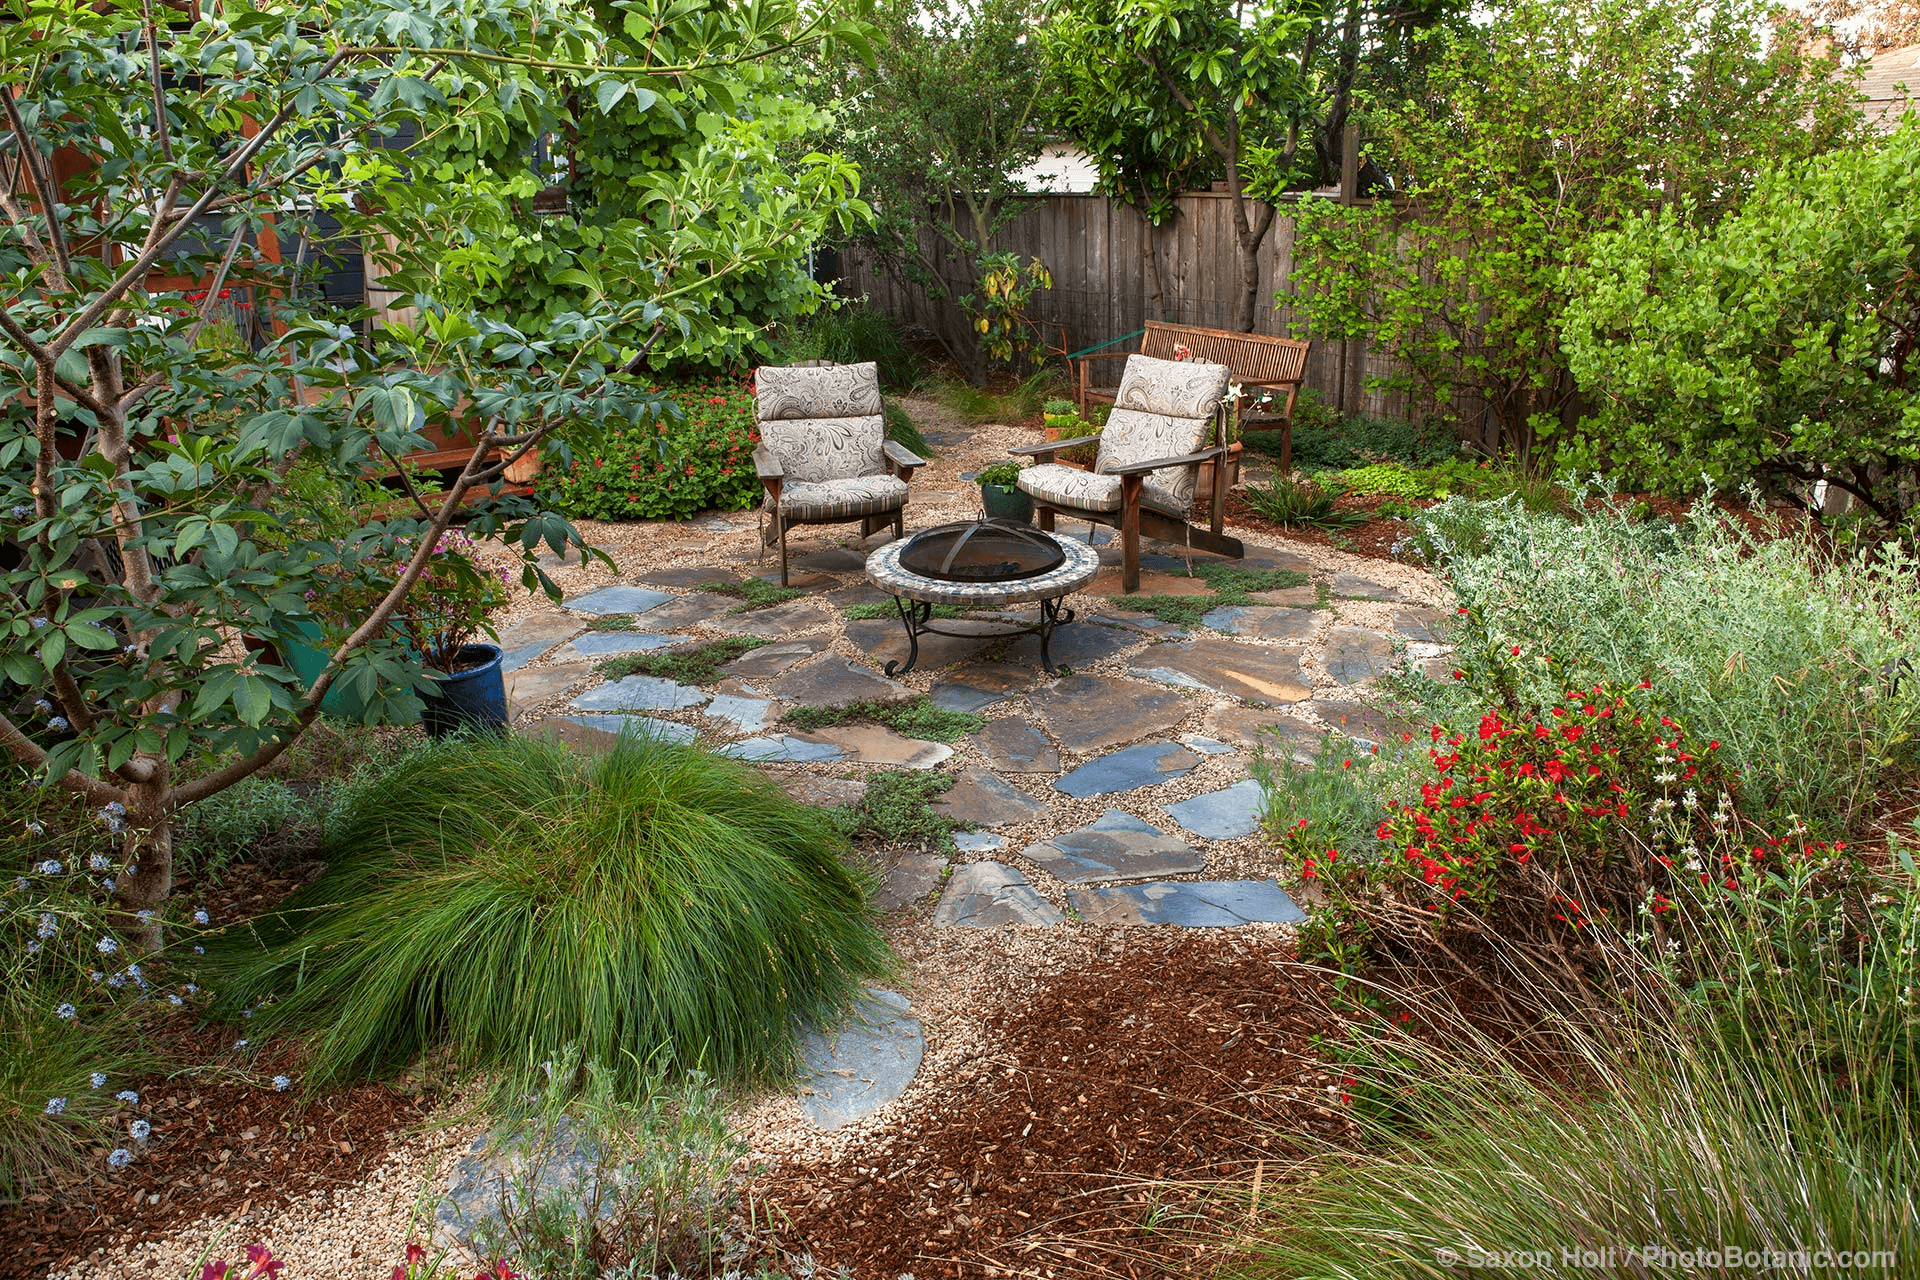 desiging on trend gardens outdoor rooms landscape design low maintenance garden design - Garden Design Low Maintenance